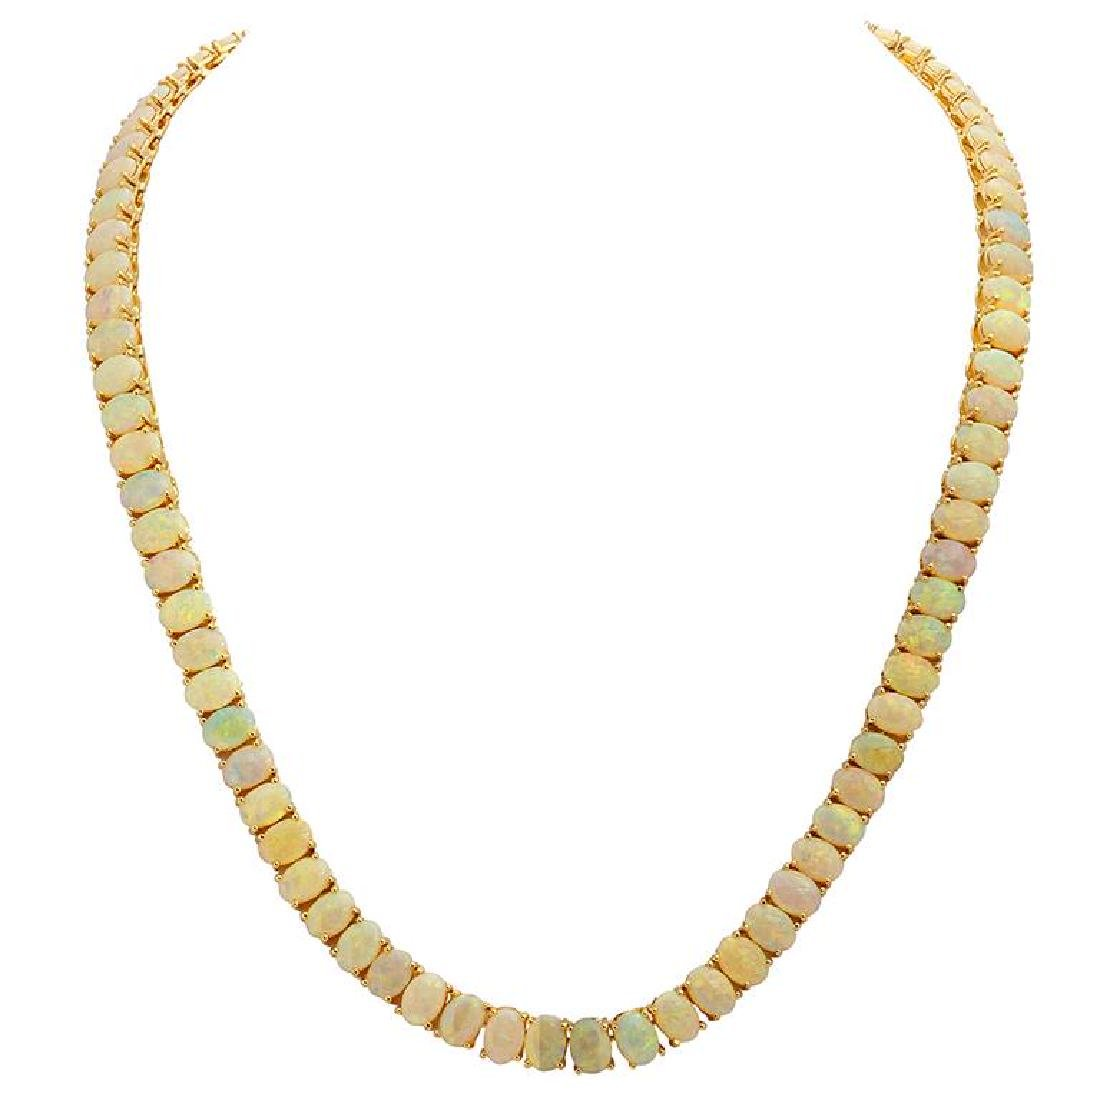 14k Yellow Gold 32.90ct White Opal Necklace